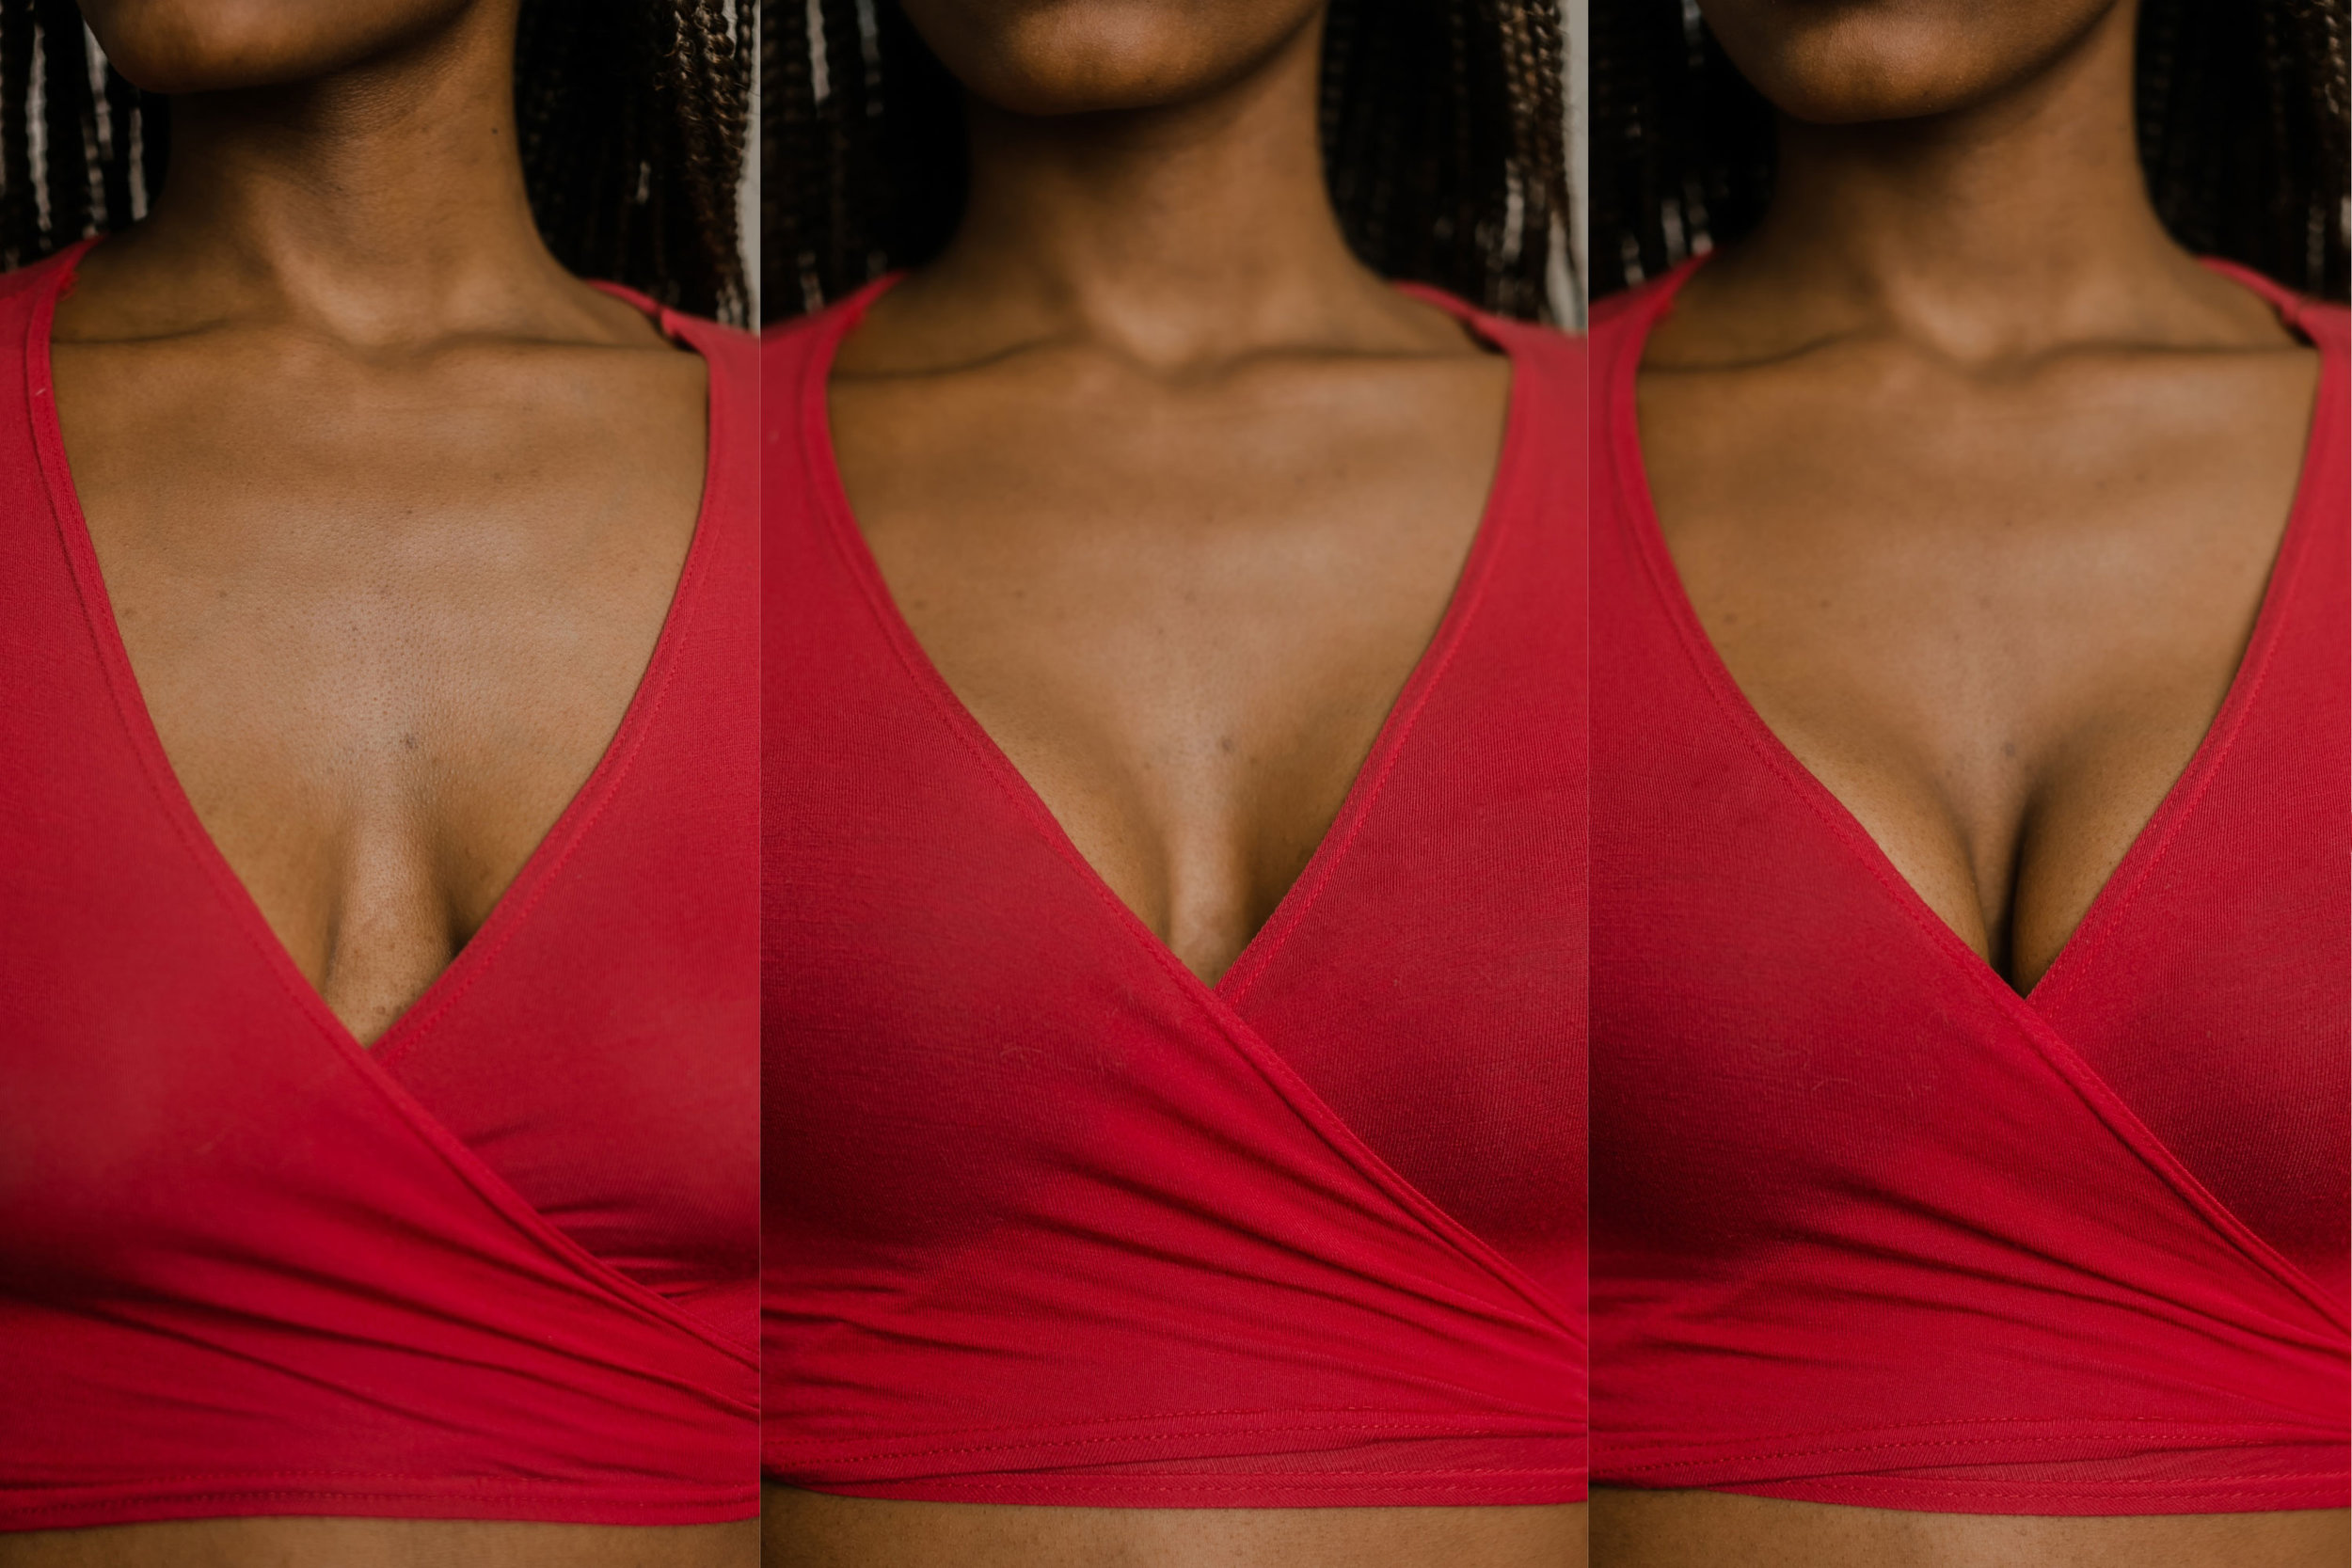 Left: No bra // Middle: With bra, separated cleavage // Right: With bra, normal cleavage